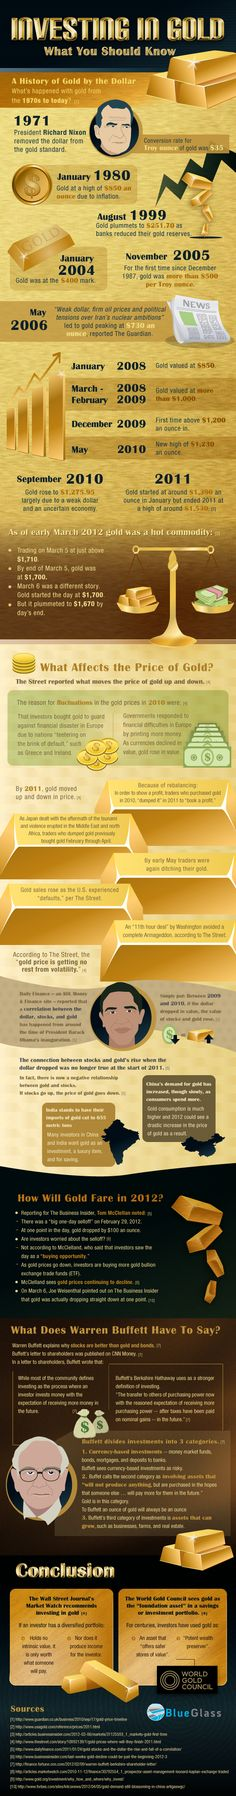 Infographic: Investing in Gold